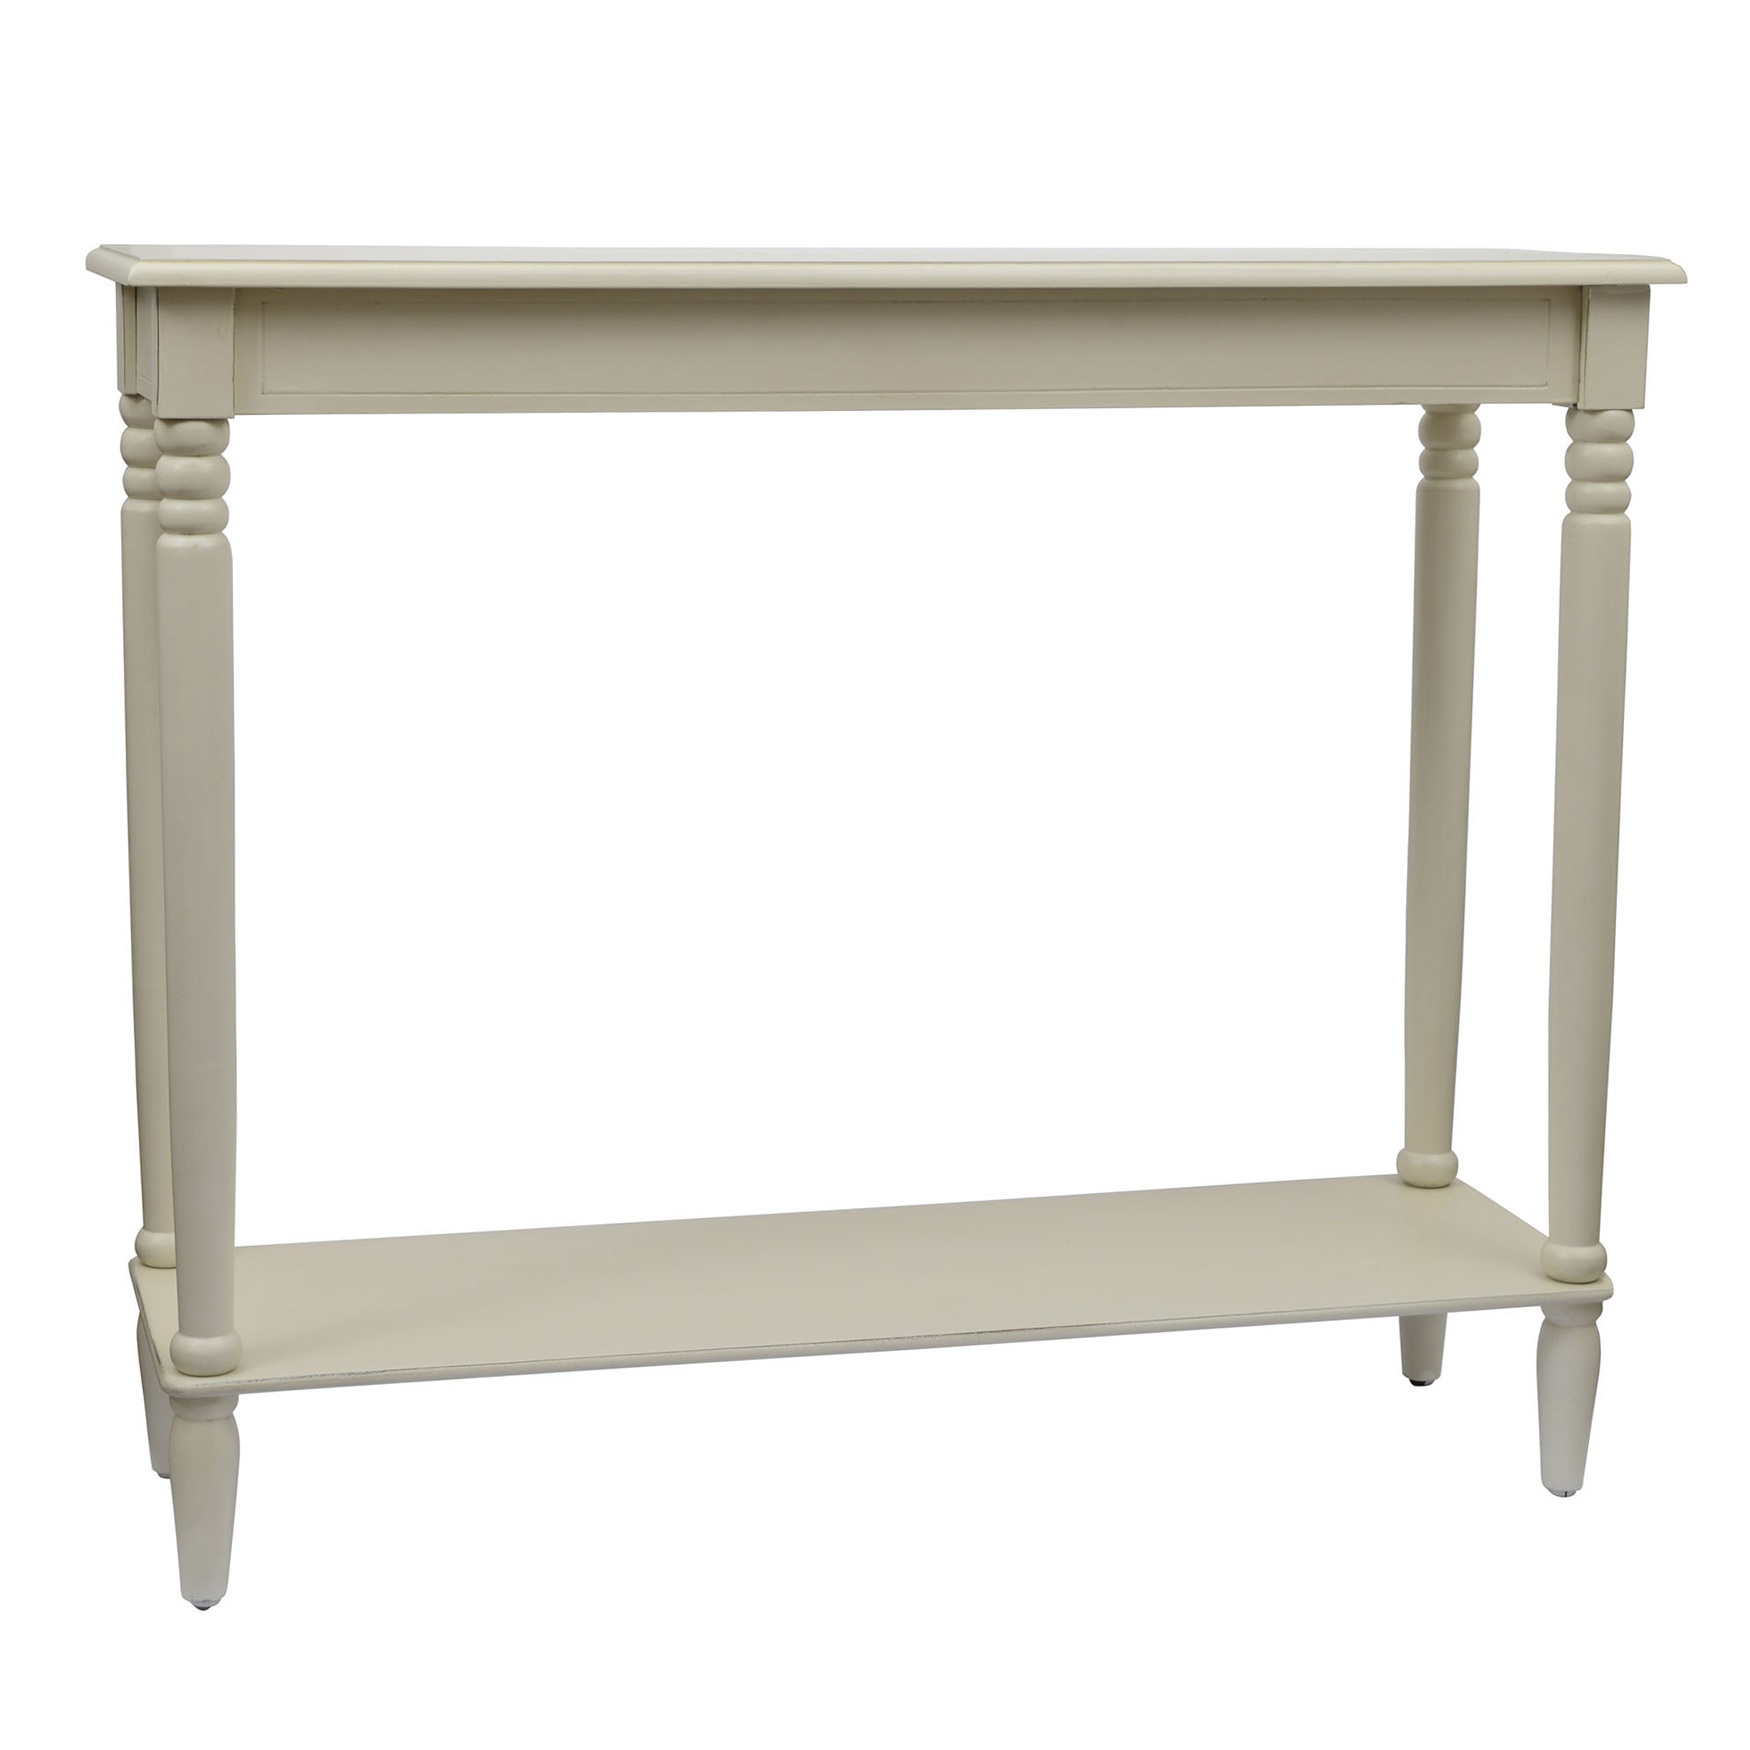 Simplify Large Console Table, ANTIQUE WHITE